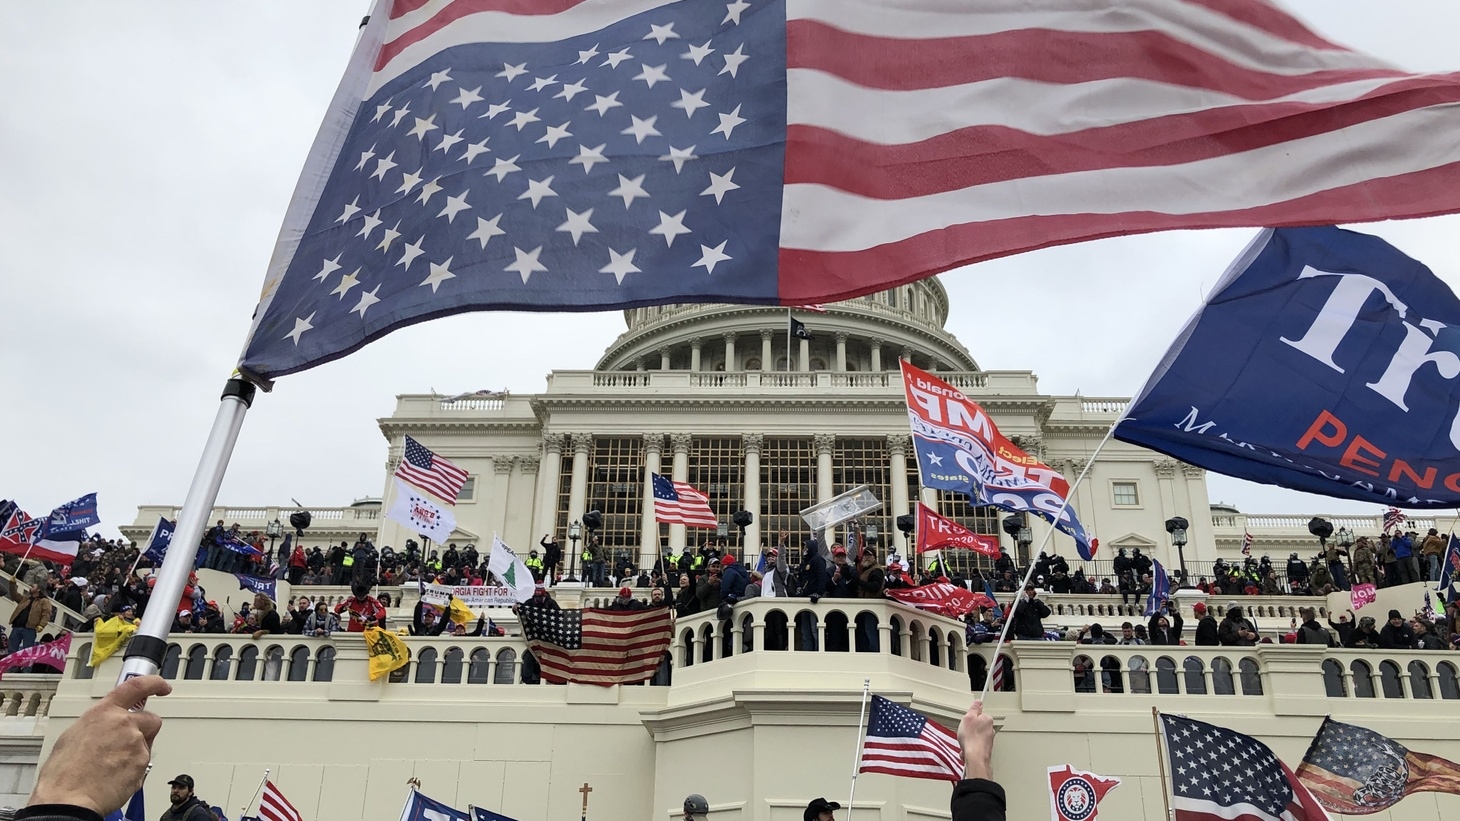 Rioters stand on the U.S. Capitol building to protest the official election of President-elect Joe Biden on Jan. 6, 2021 in Washington DC.